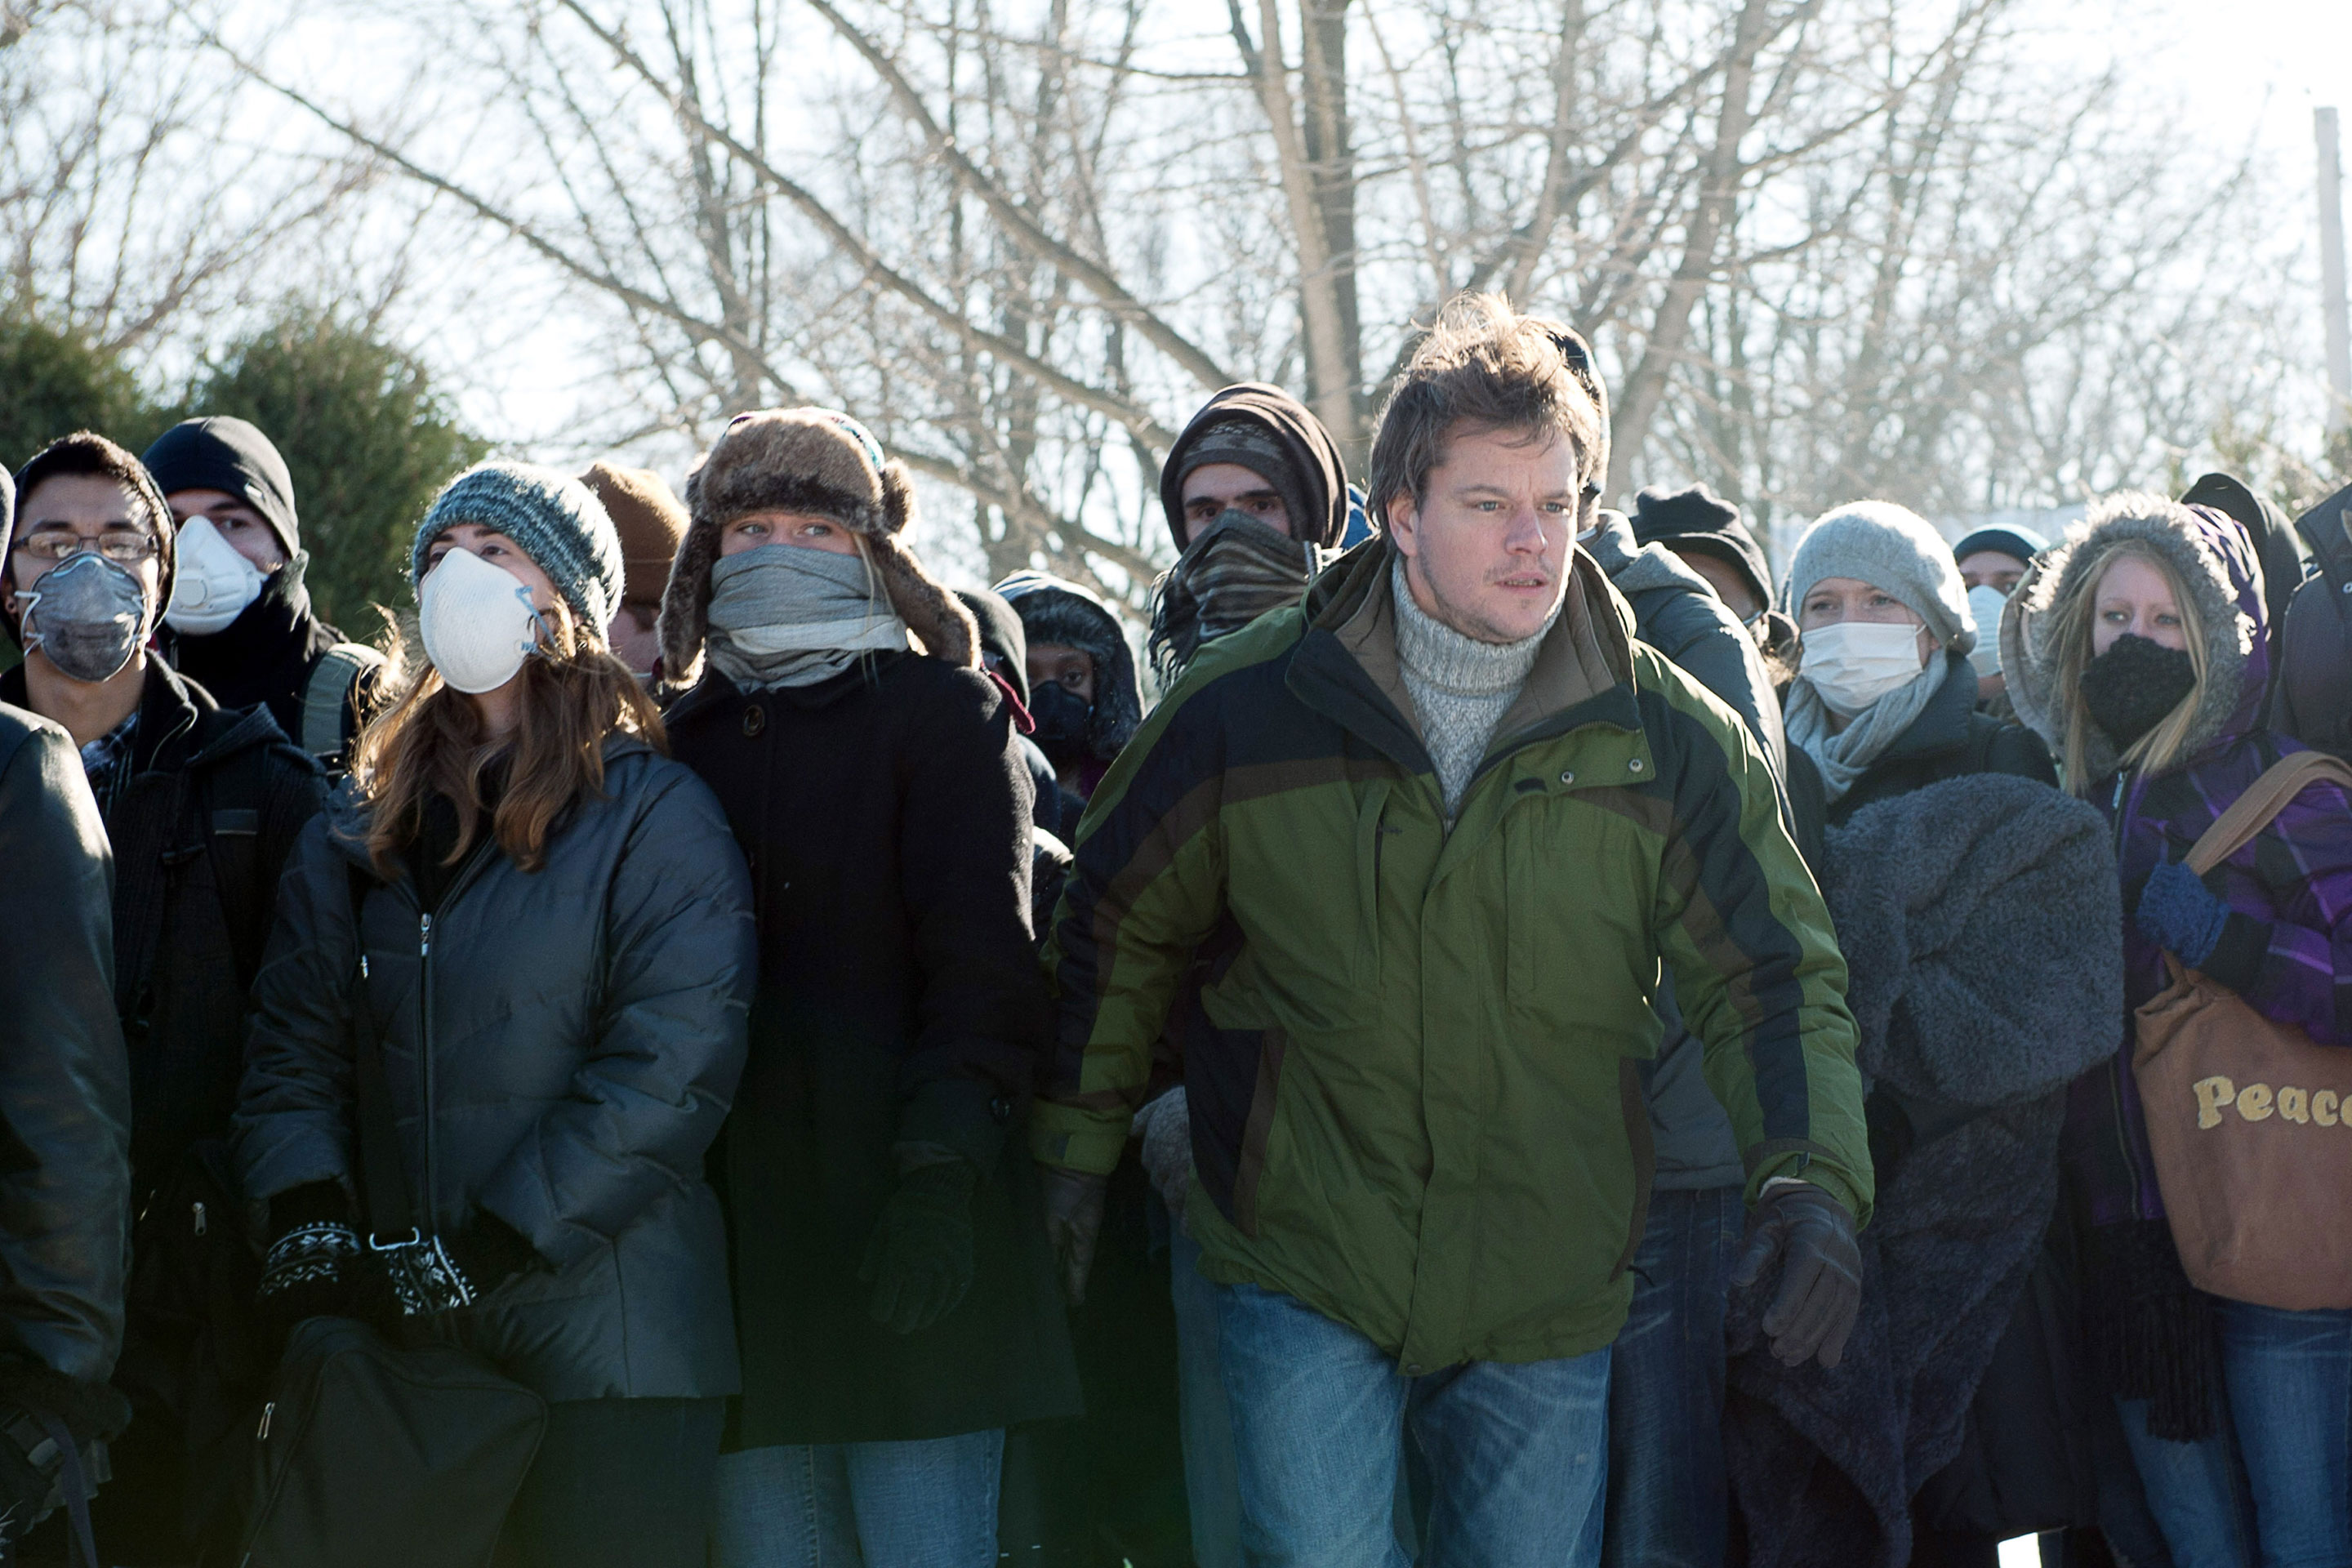 Matt Damon emerges from a crowd of people in coats and medical face masks in 2011's Contagion.